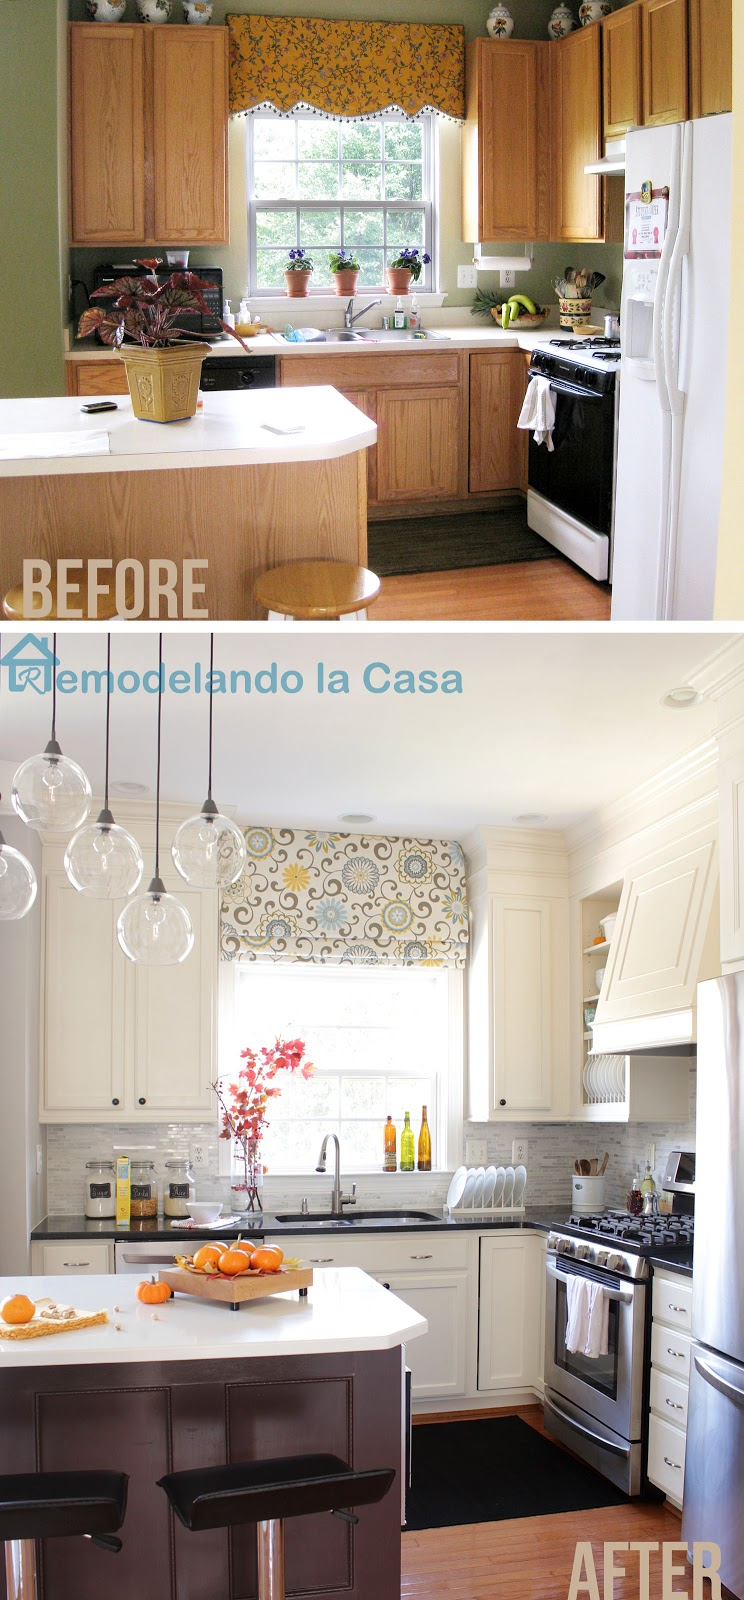 Kitchen makeover remodelando la casa What to do with space above cabinets